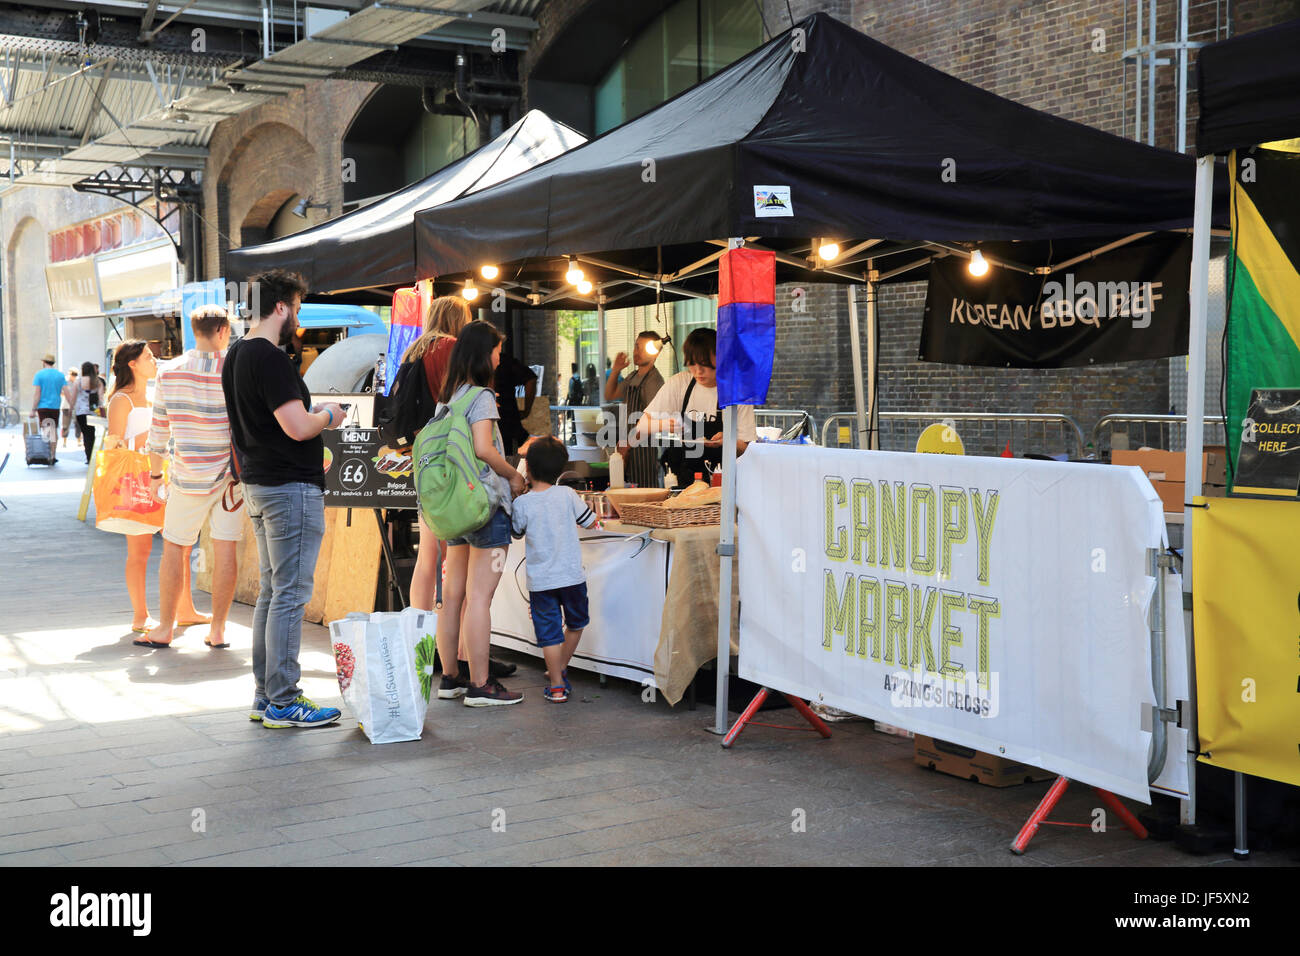 Artisan street food on sale at the Kings Cross Canopy Market in the historic West Handyside Canopy in north London UK & Artisan street food on sale at the Kings Cross Canopy Market in ...